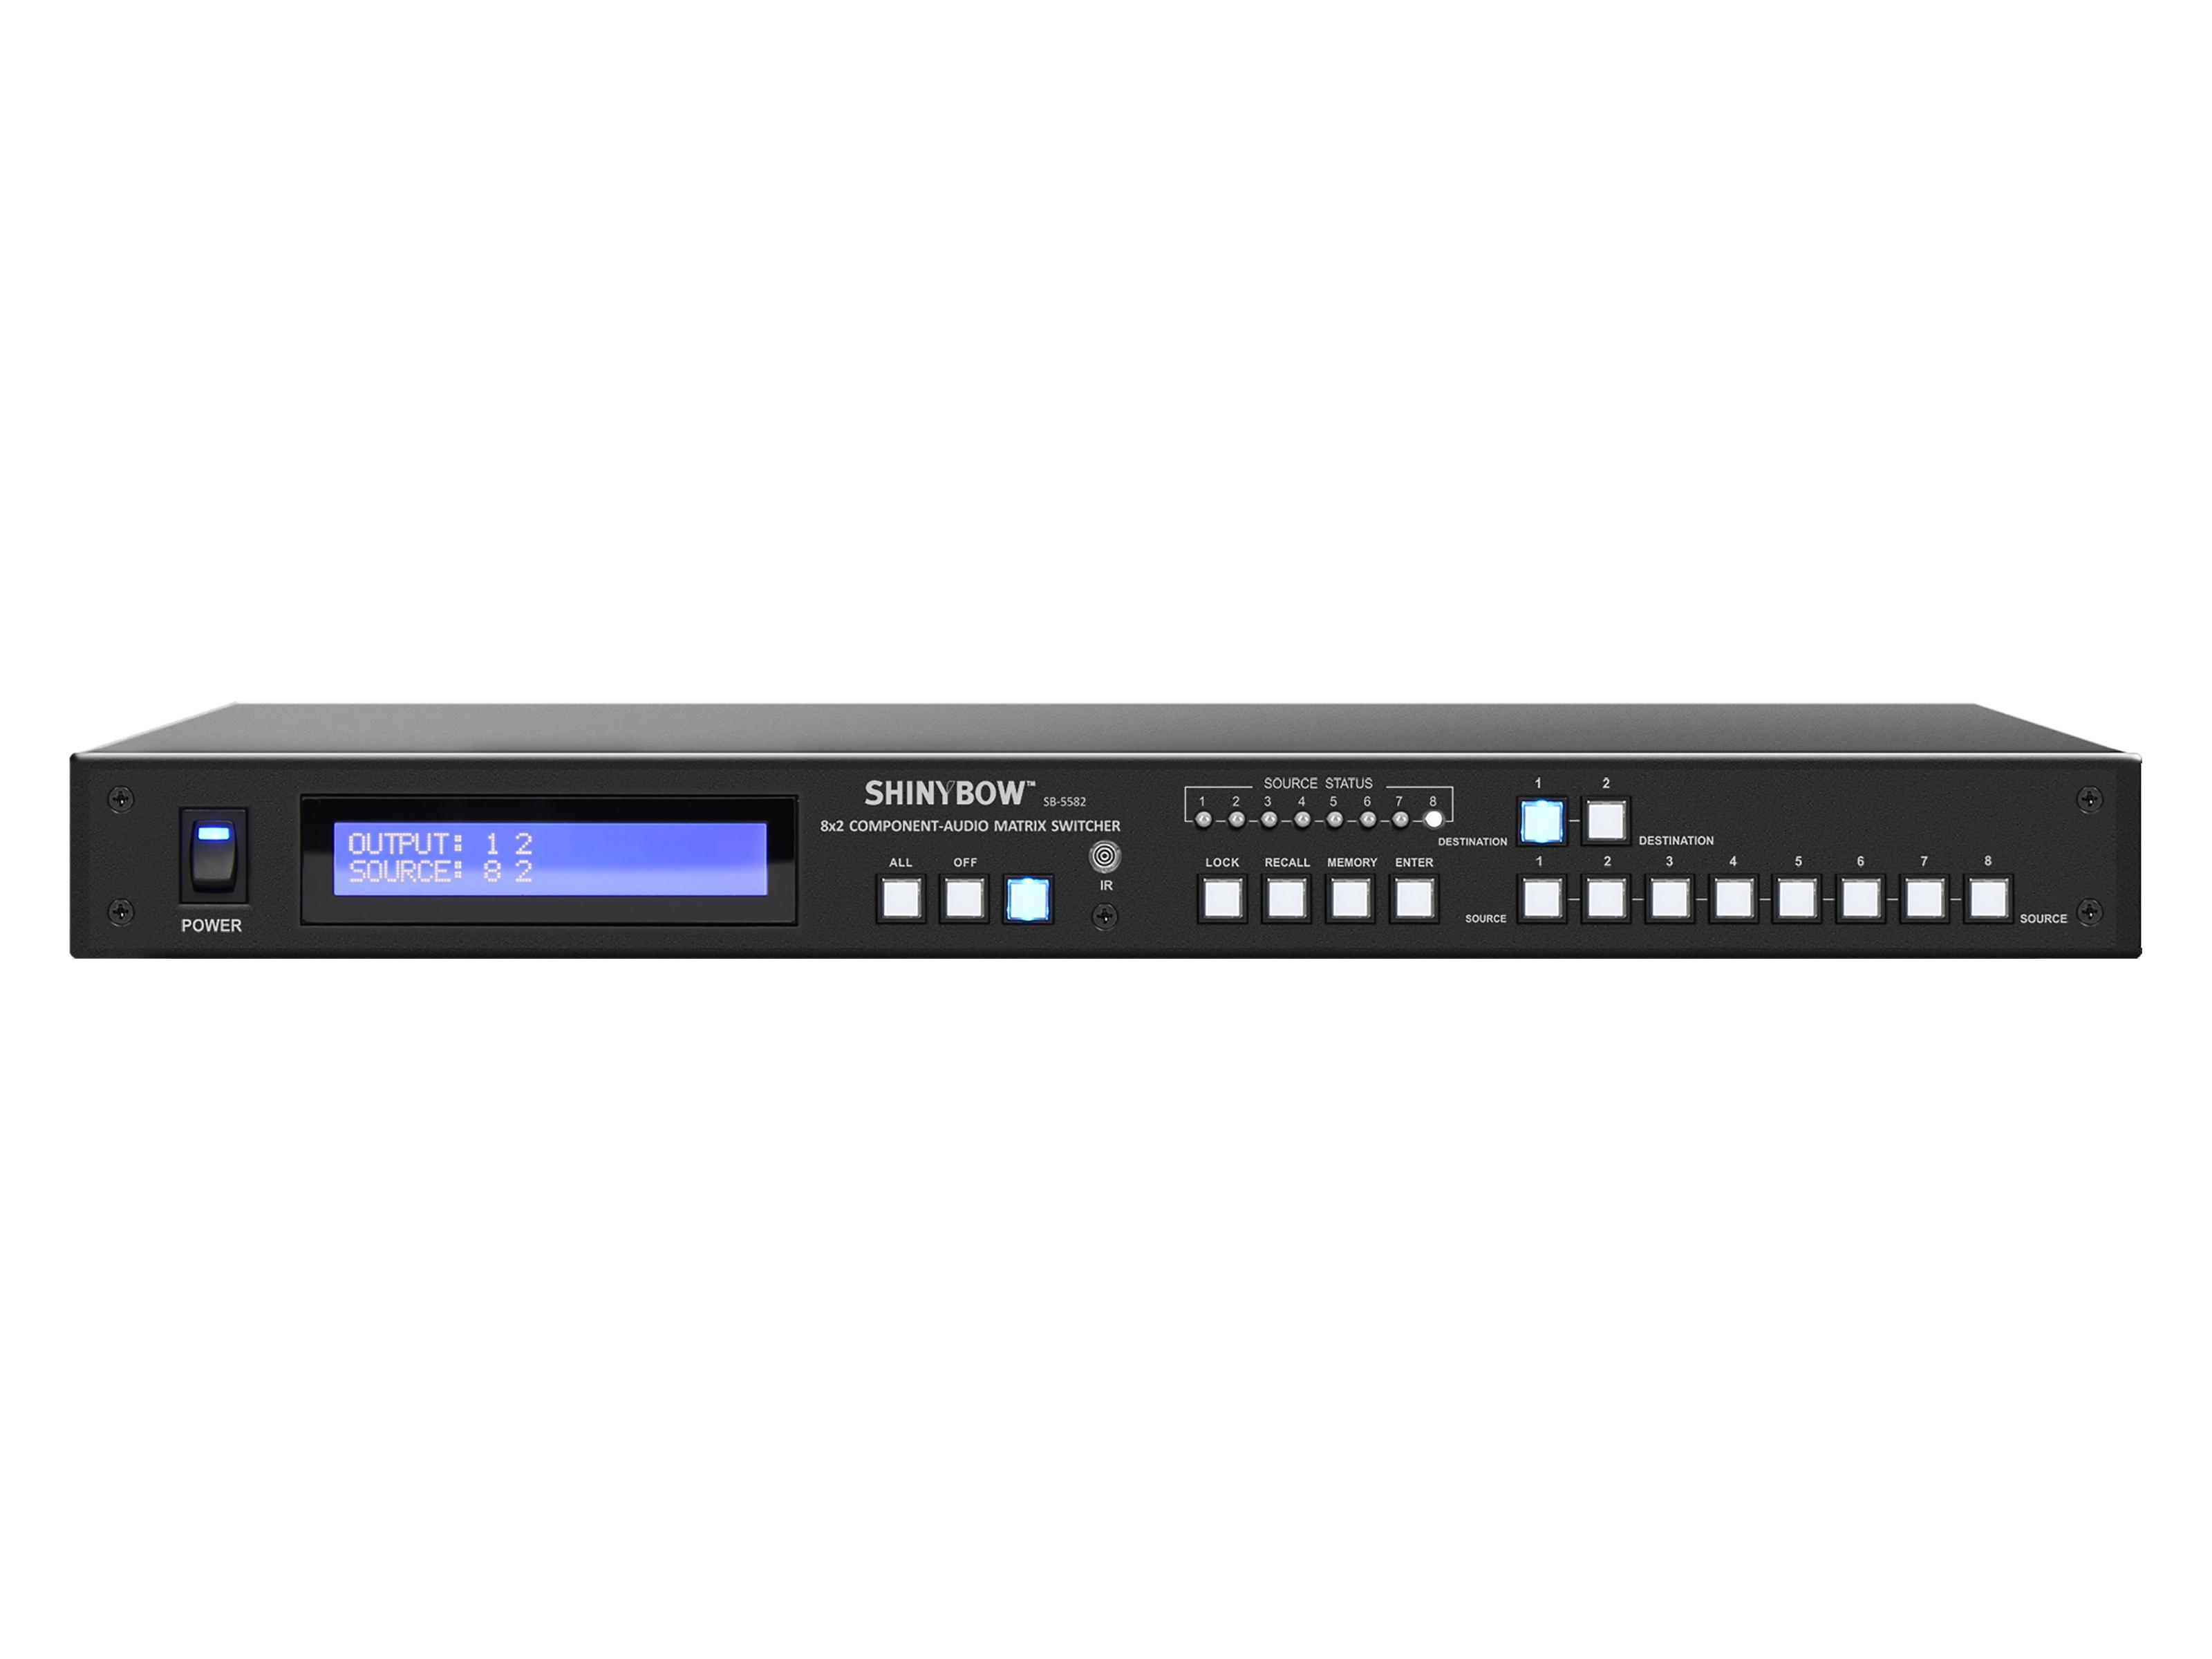 Shinybow SB-5582LCM 8x2 Component Video/Stereo Audio Matrix Switcher with RS-232